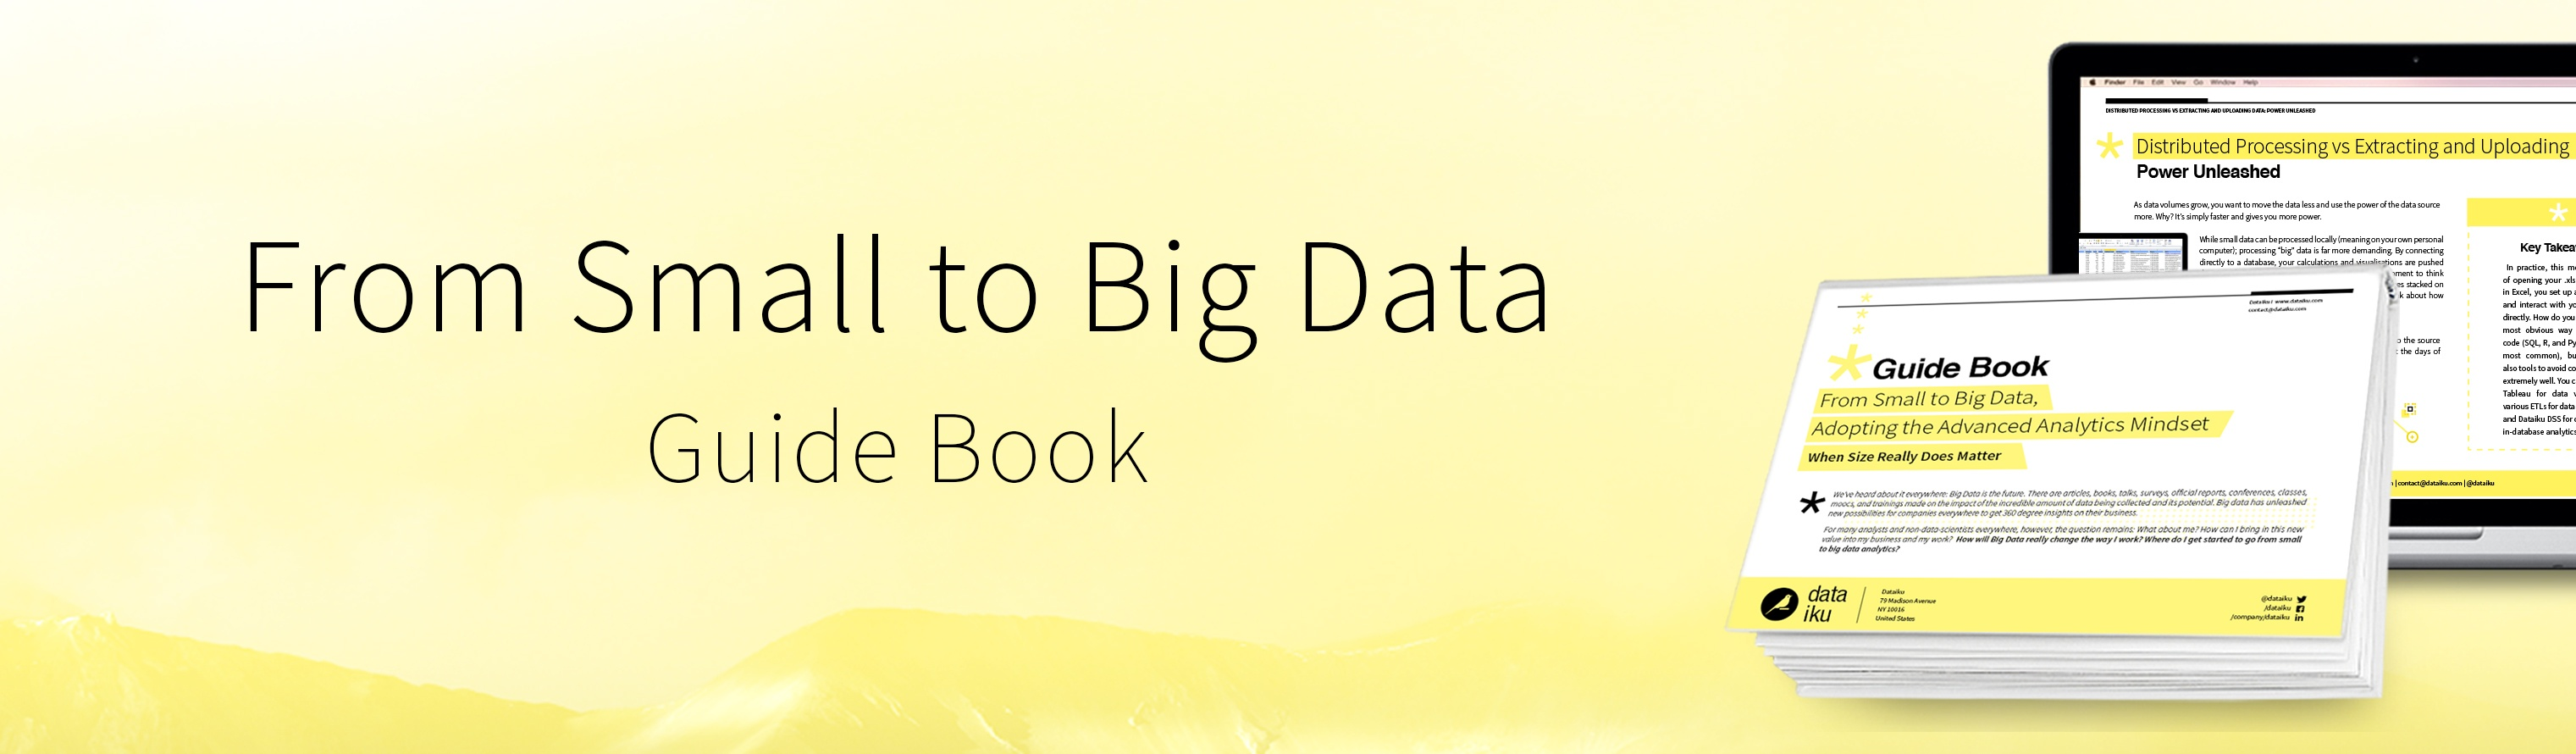 From Small to Big Data Advanced Analytics Guidebook